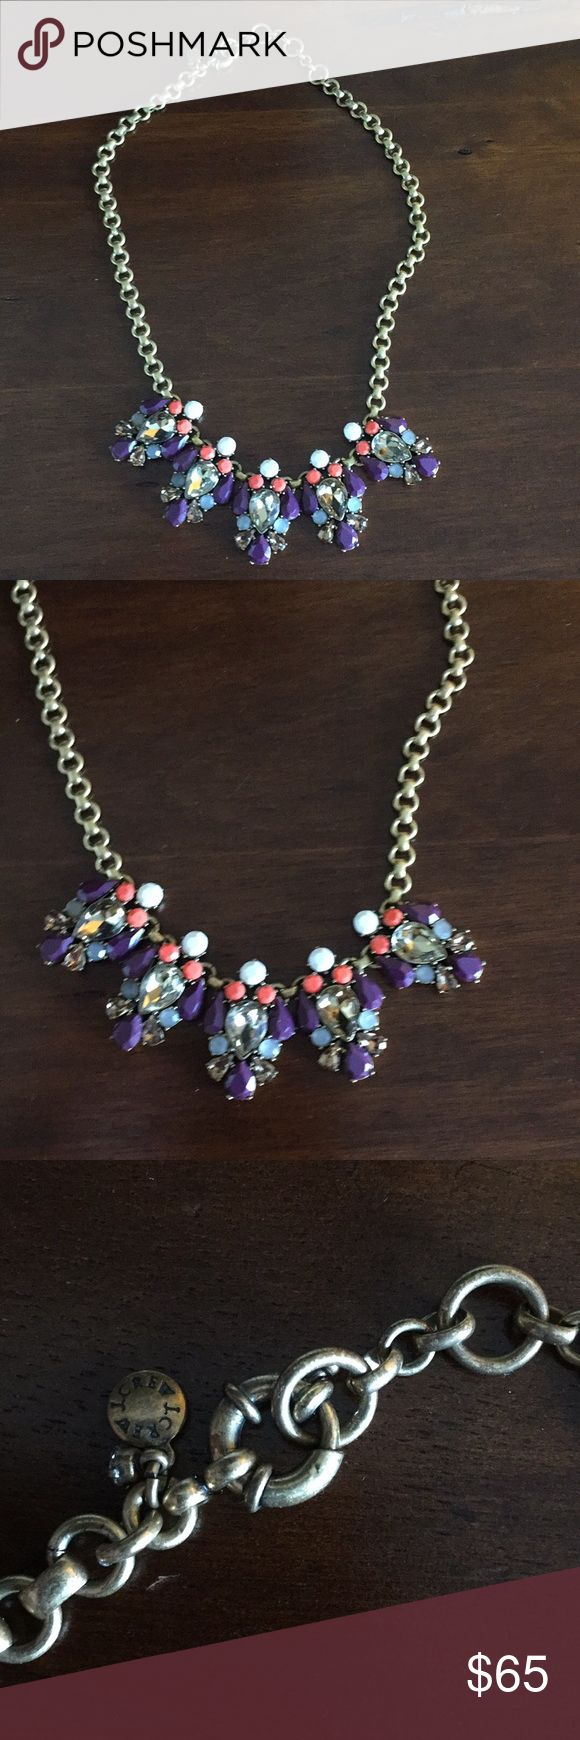 Gorgeous J Crew Statement Necklace Gorgeous J Crew Necklace    - Excellent Gift for anyone special in your life. - Never Worn - Brand Spanking New - Firm on price J. Crew Jewelry Necklaces